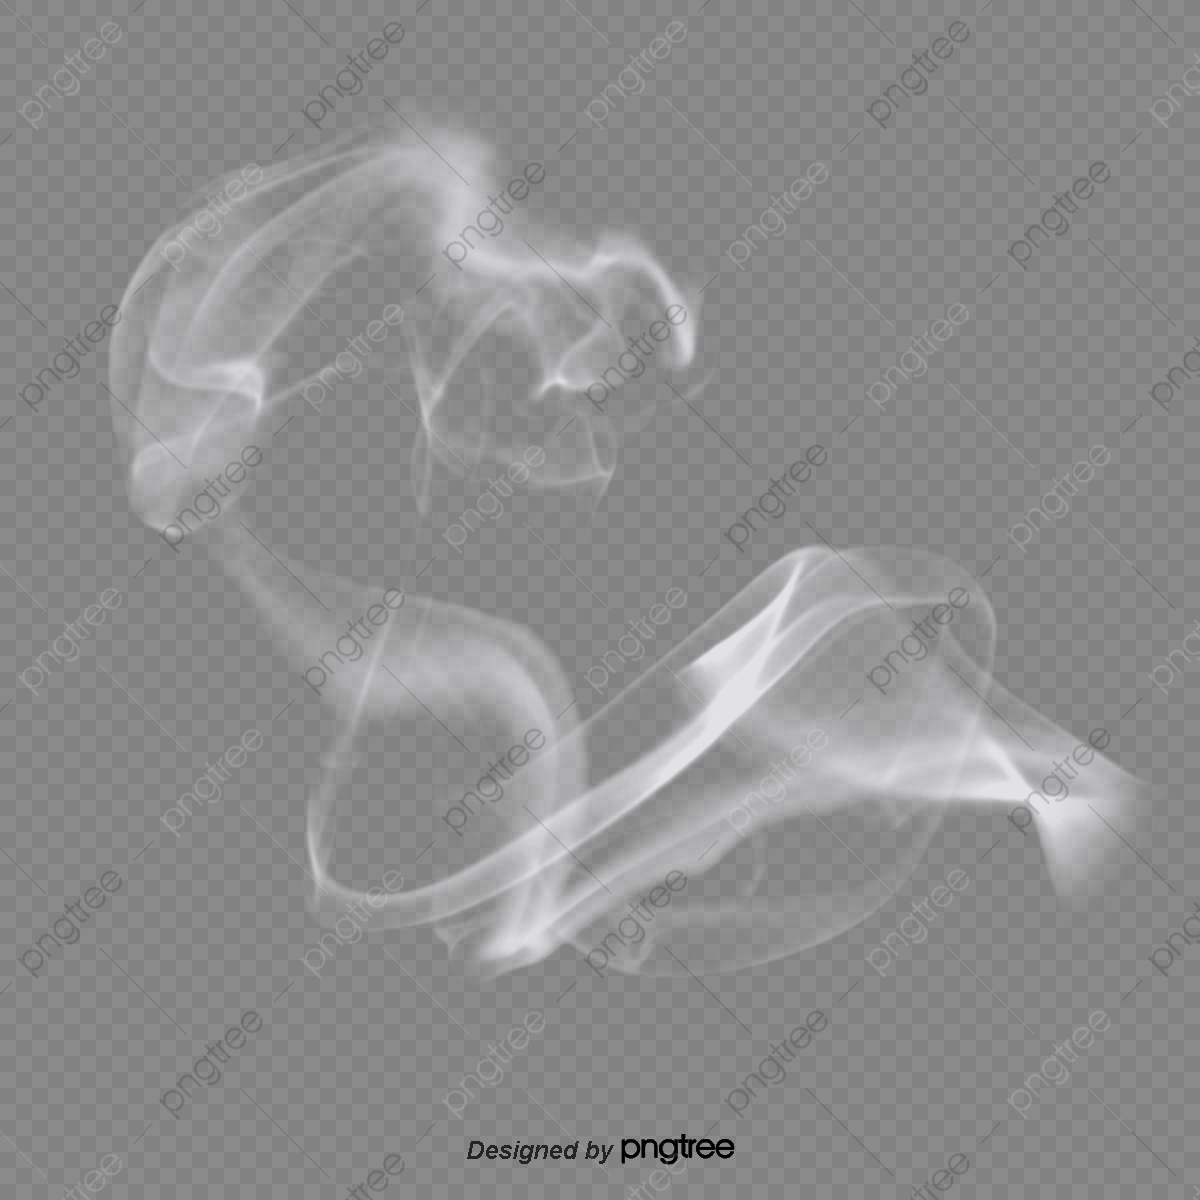 white dreamy smoke element element diffuse white png transparent clipart image and psd file for free download https pngtree com freepng white dreamy smoke element 4155965 html